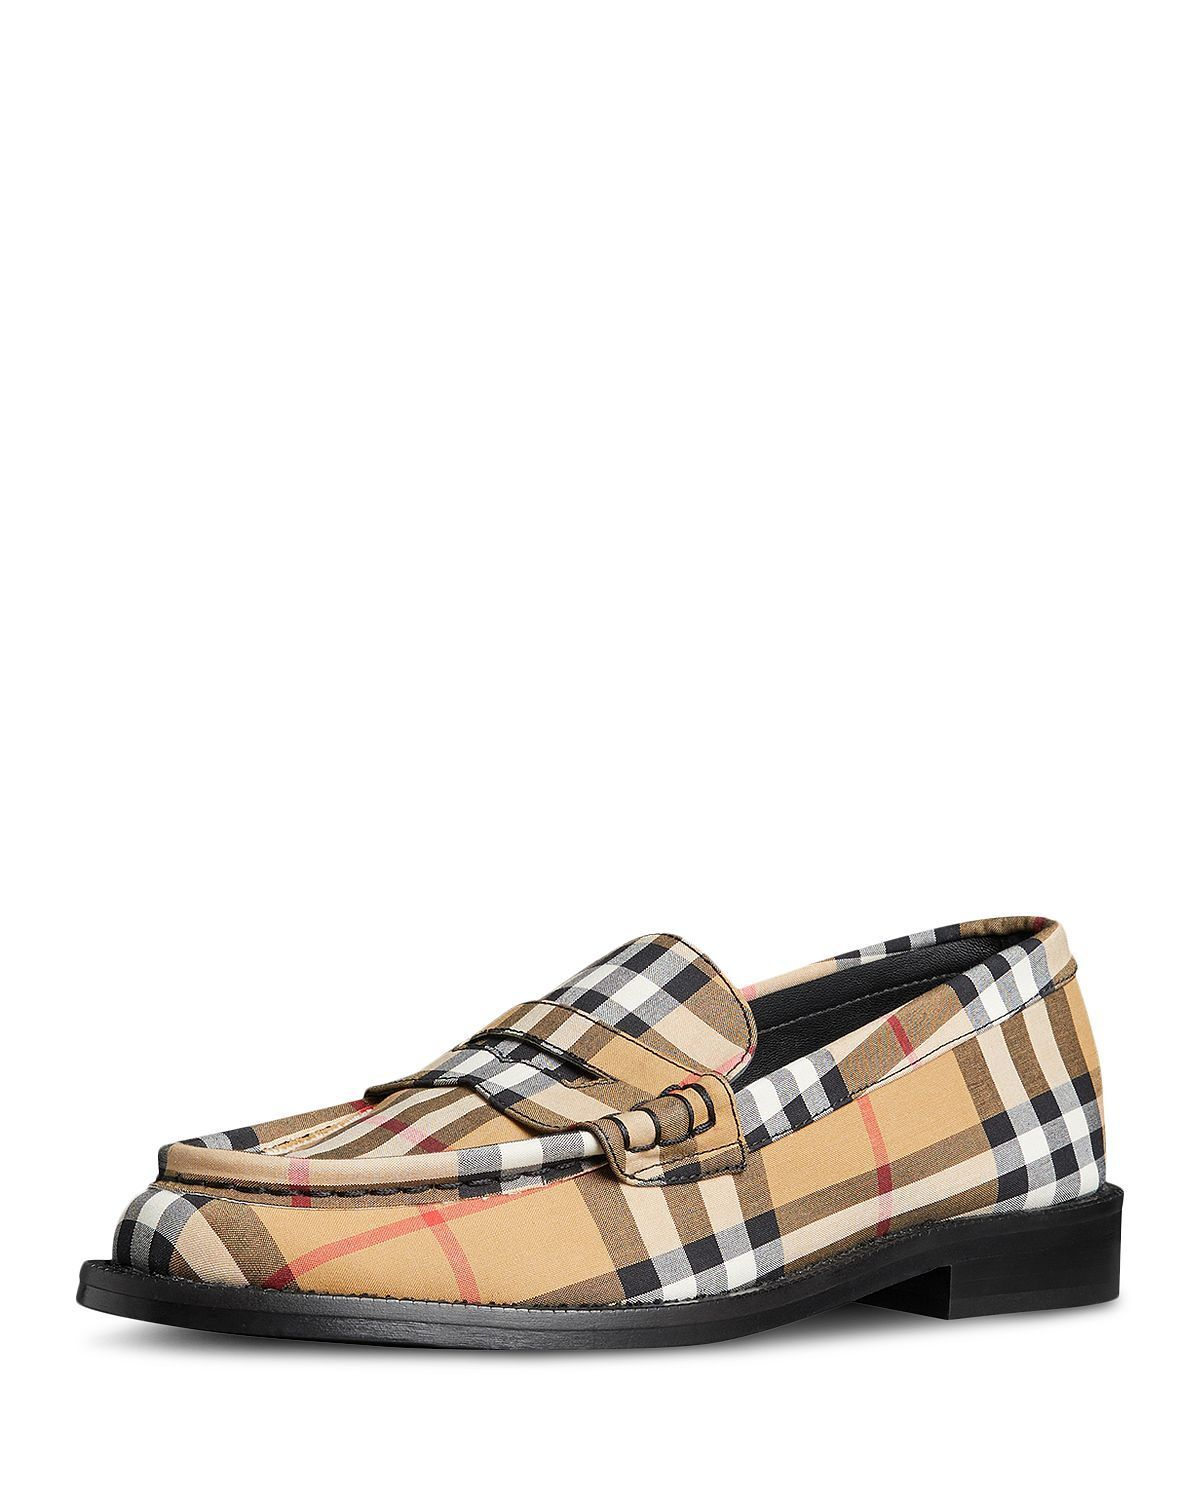 NEW  620 620 620 BURBERRY Women's Bedmont Check Loafers shoes, Size US 9   EU 39 90d01a